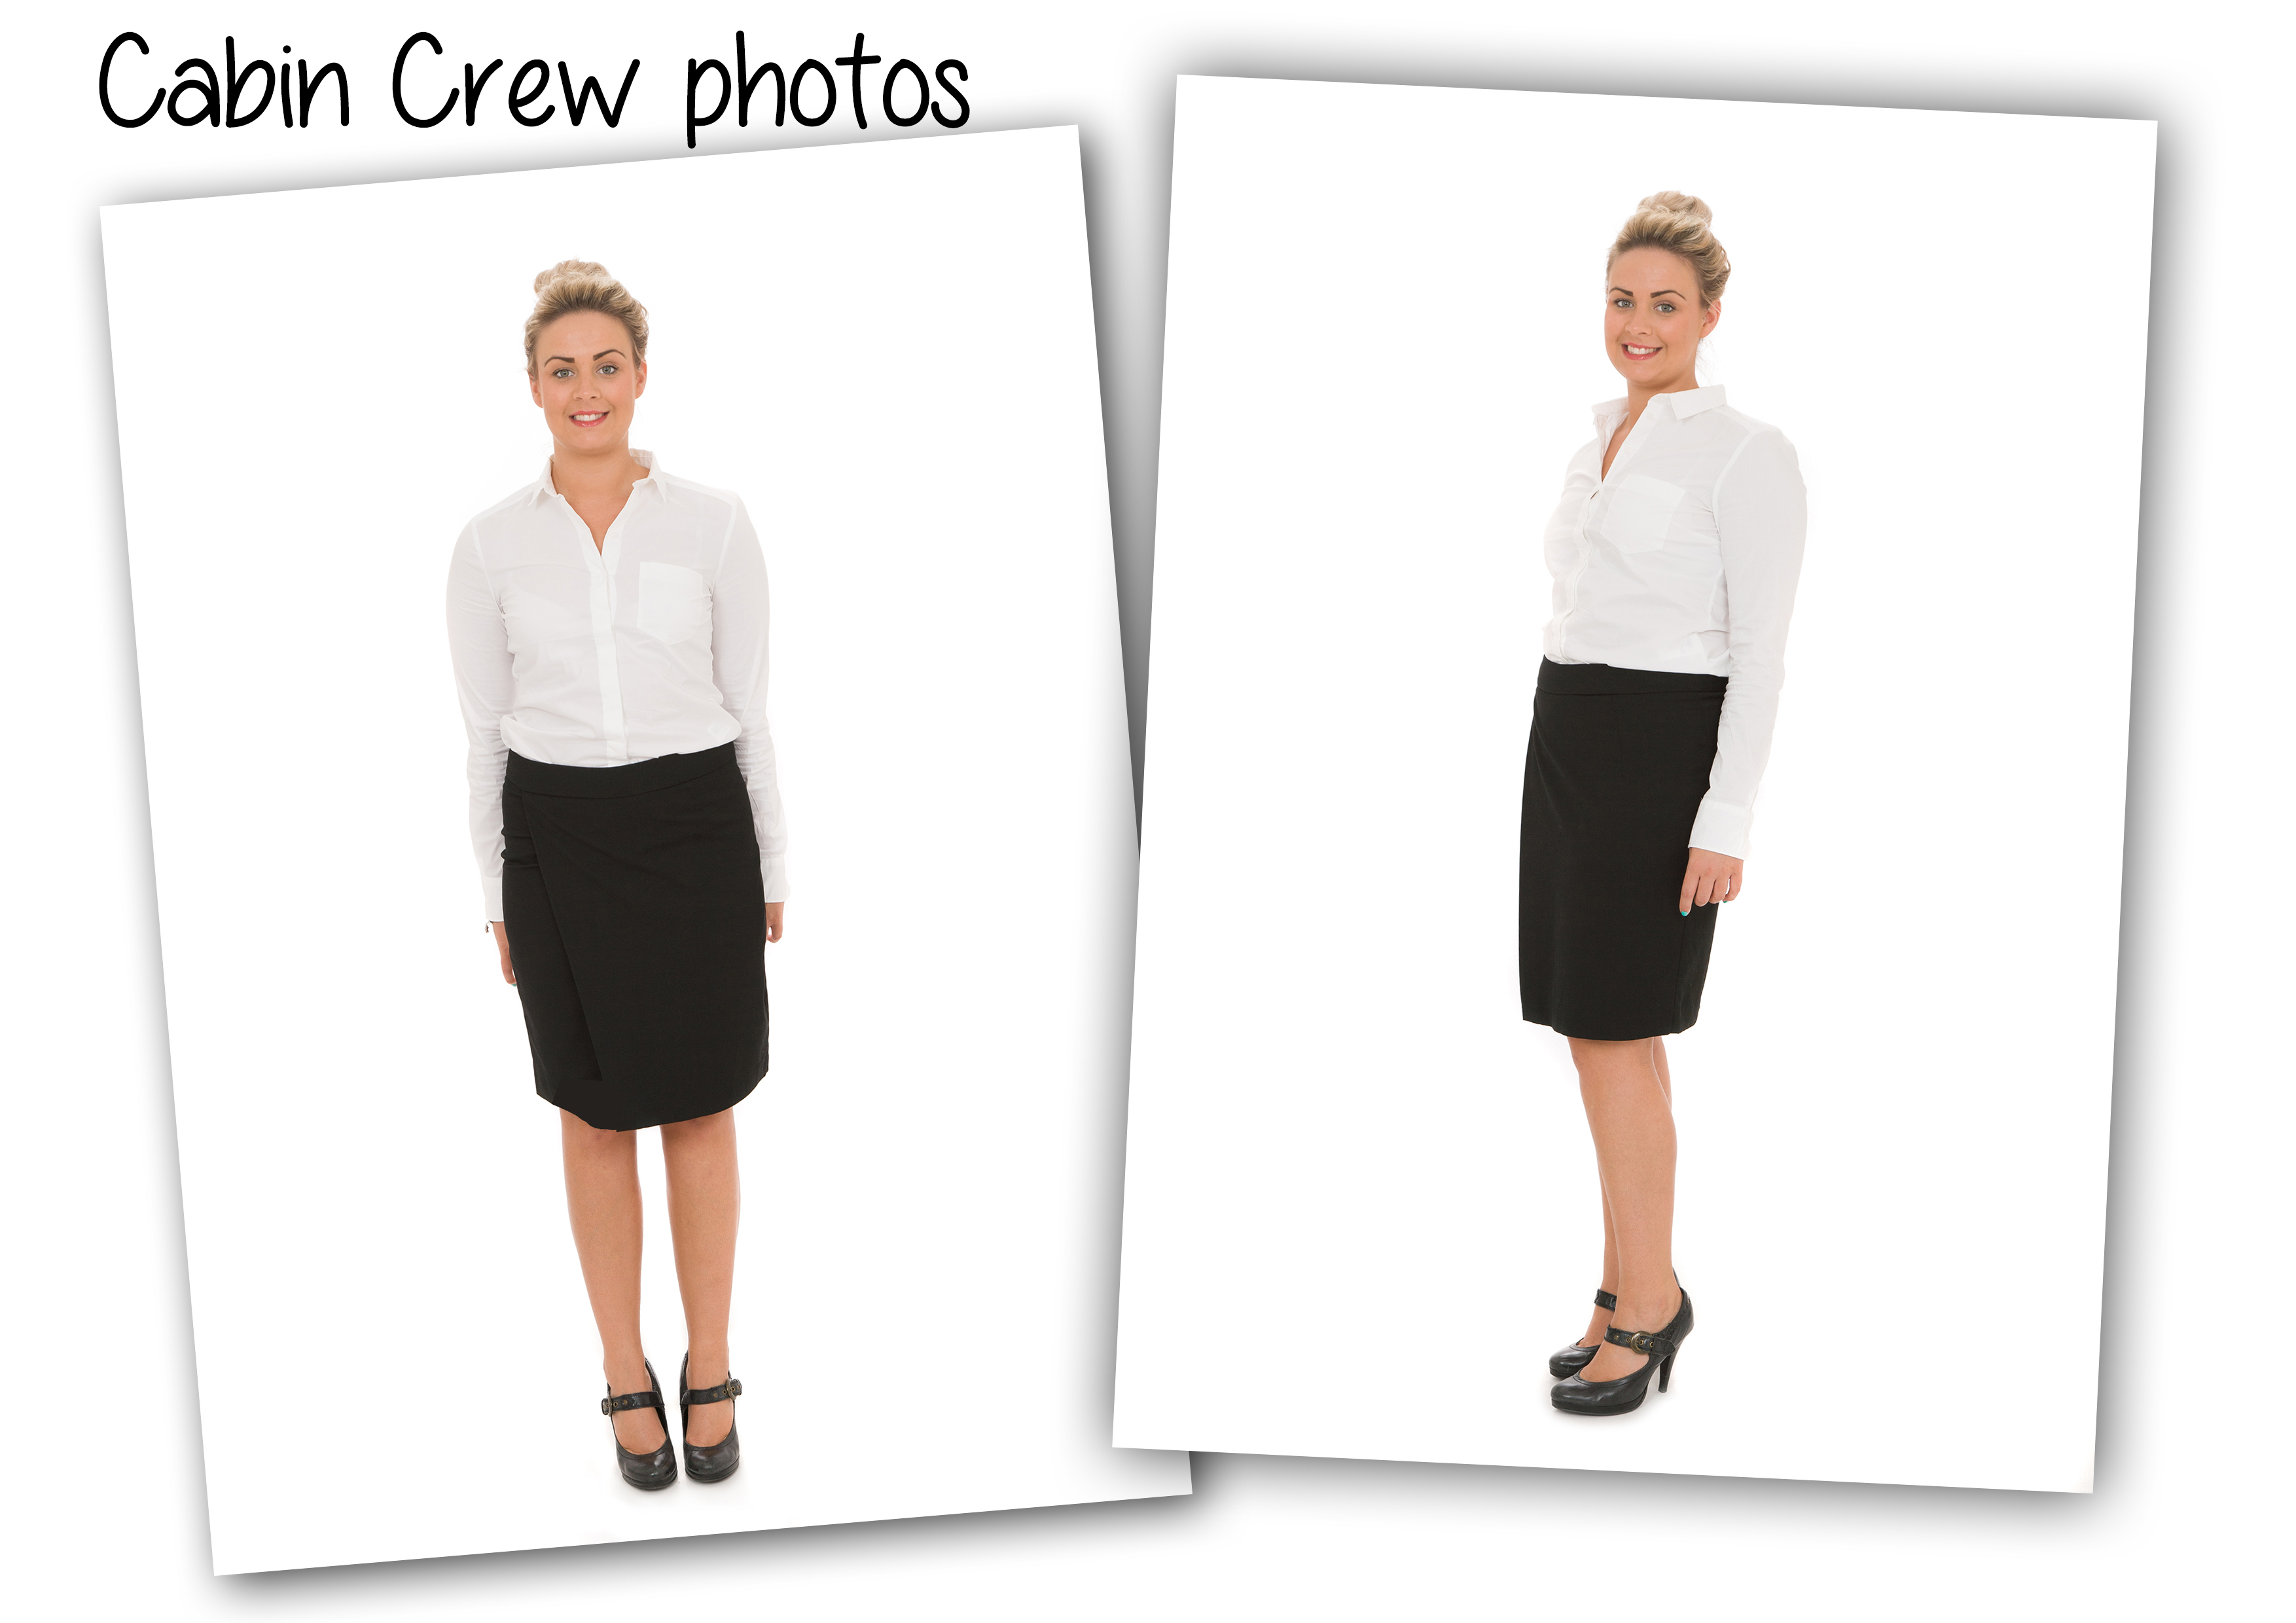 Cabin Crew photography